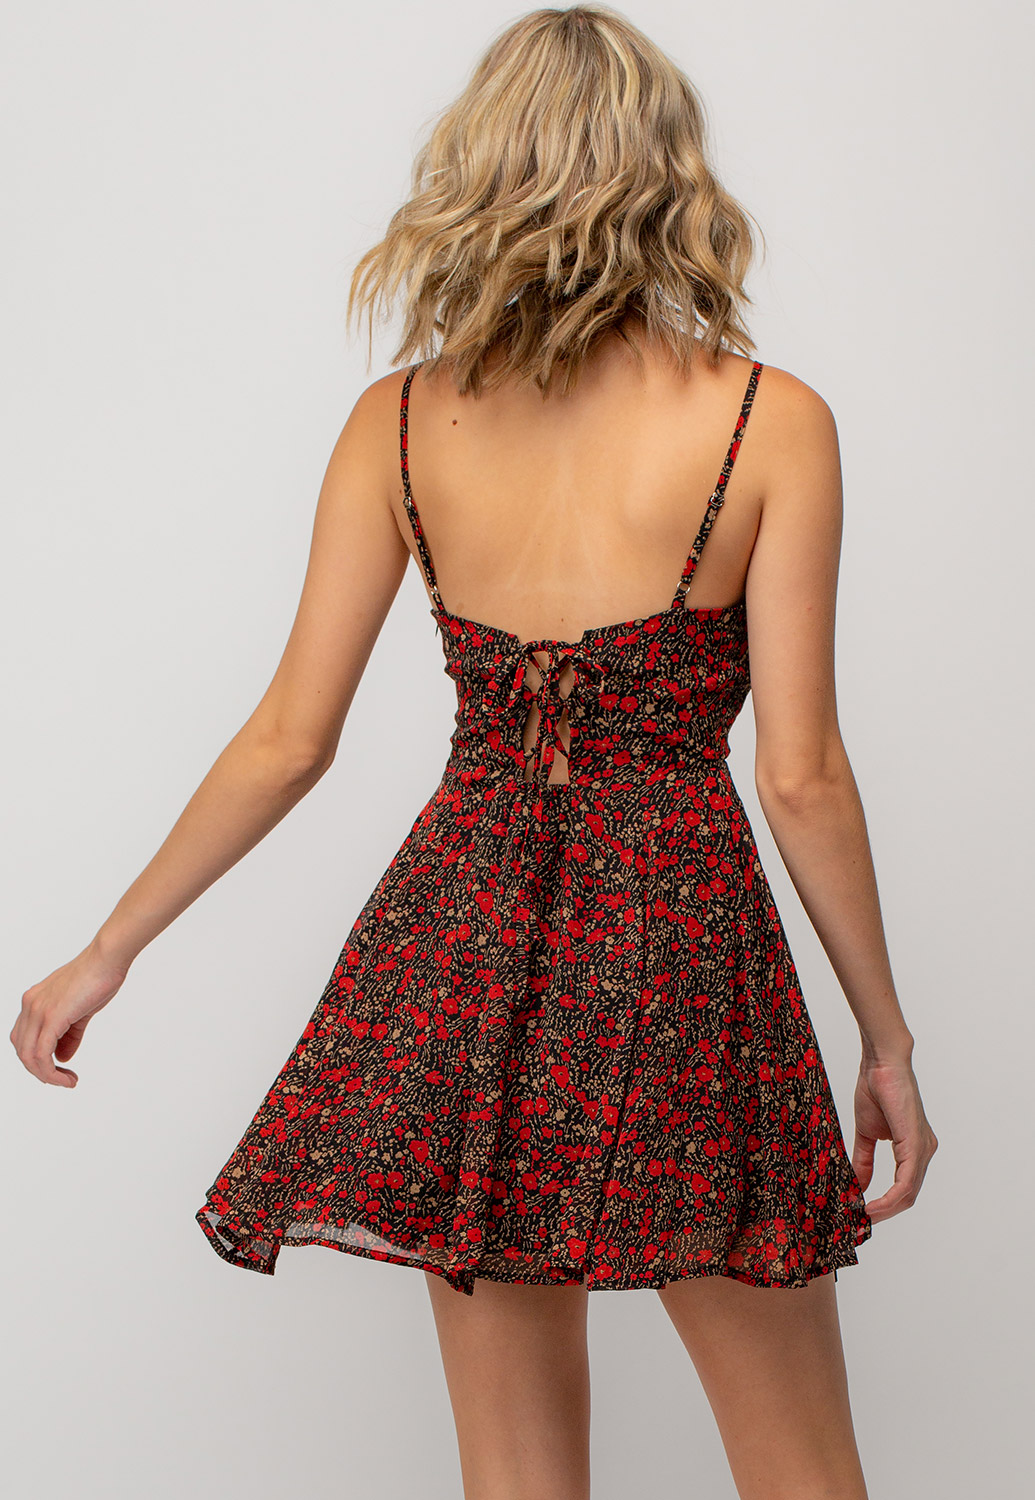 Floral Printed Strappy Mini Dress With Tie Back